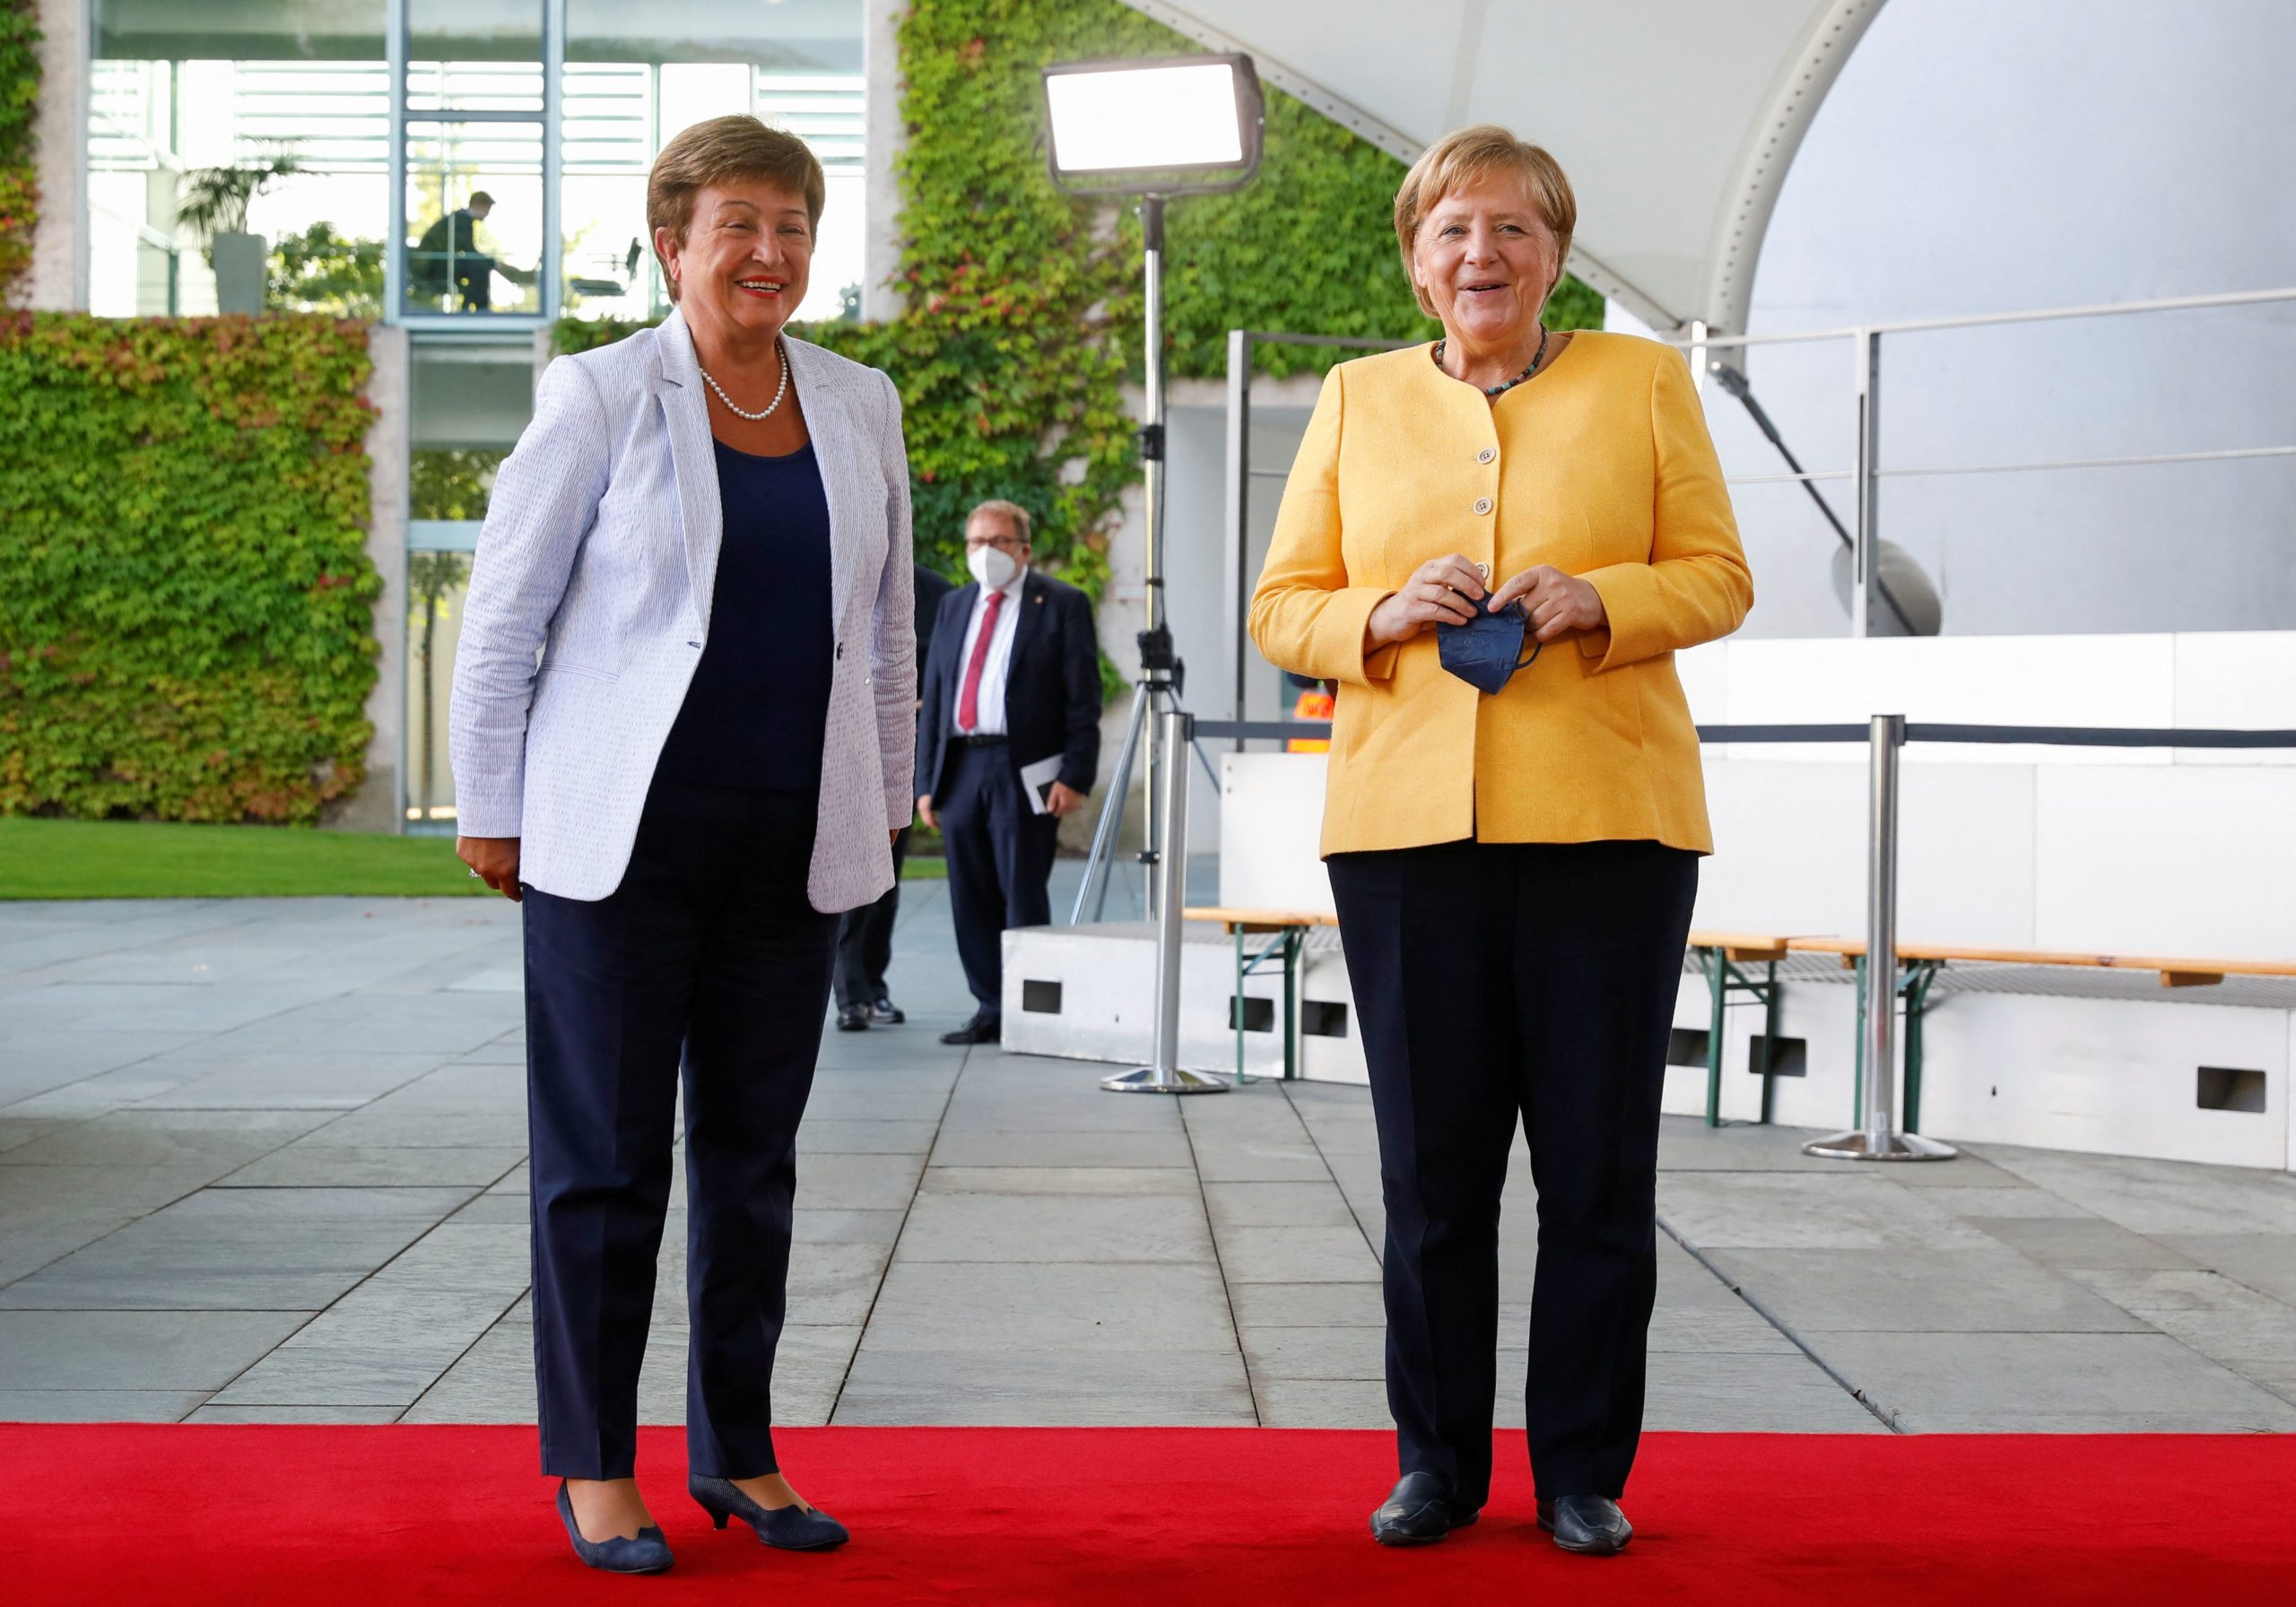 German Chancellor Angela Merkel welcomes IMF Director Kristalina Georgieva to the G20 Compact with Africa meeting in Berlin on Aug. 27. (Michele Tantussi/Pool/AFP via Getty Images)